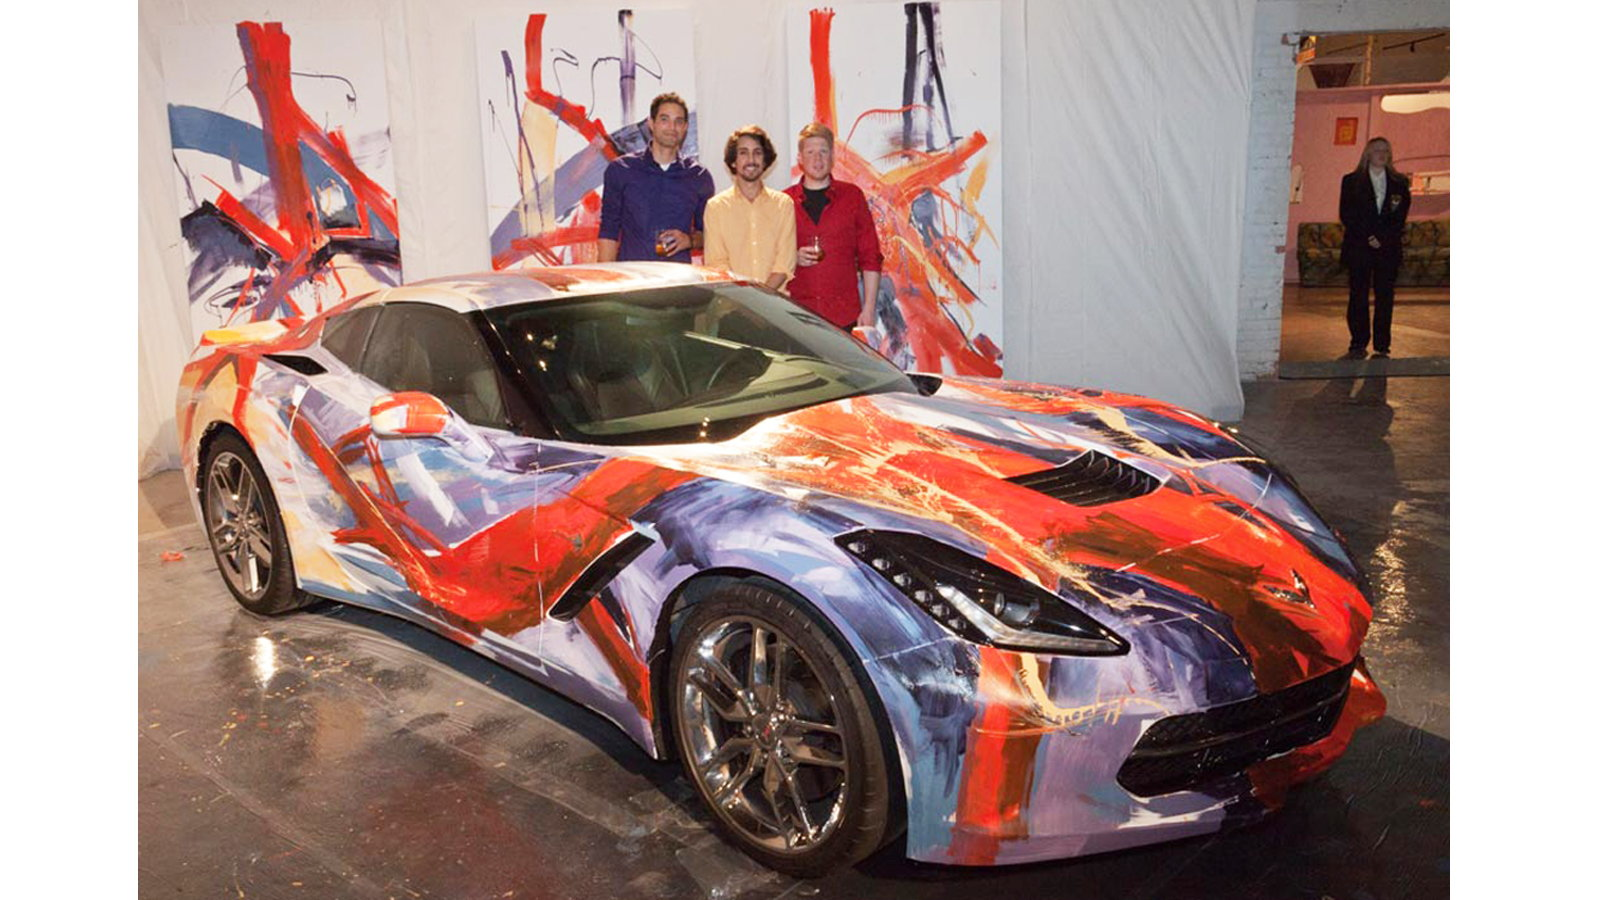 C7 for charity